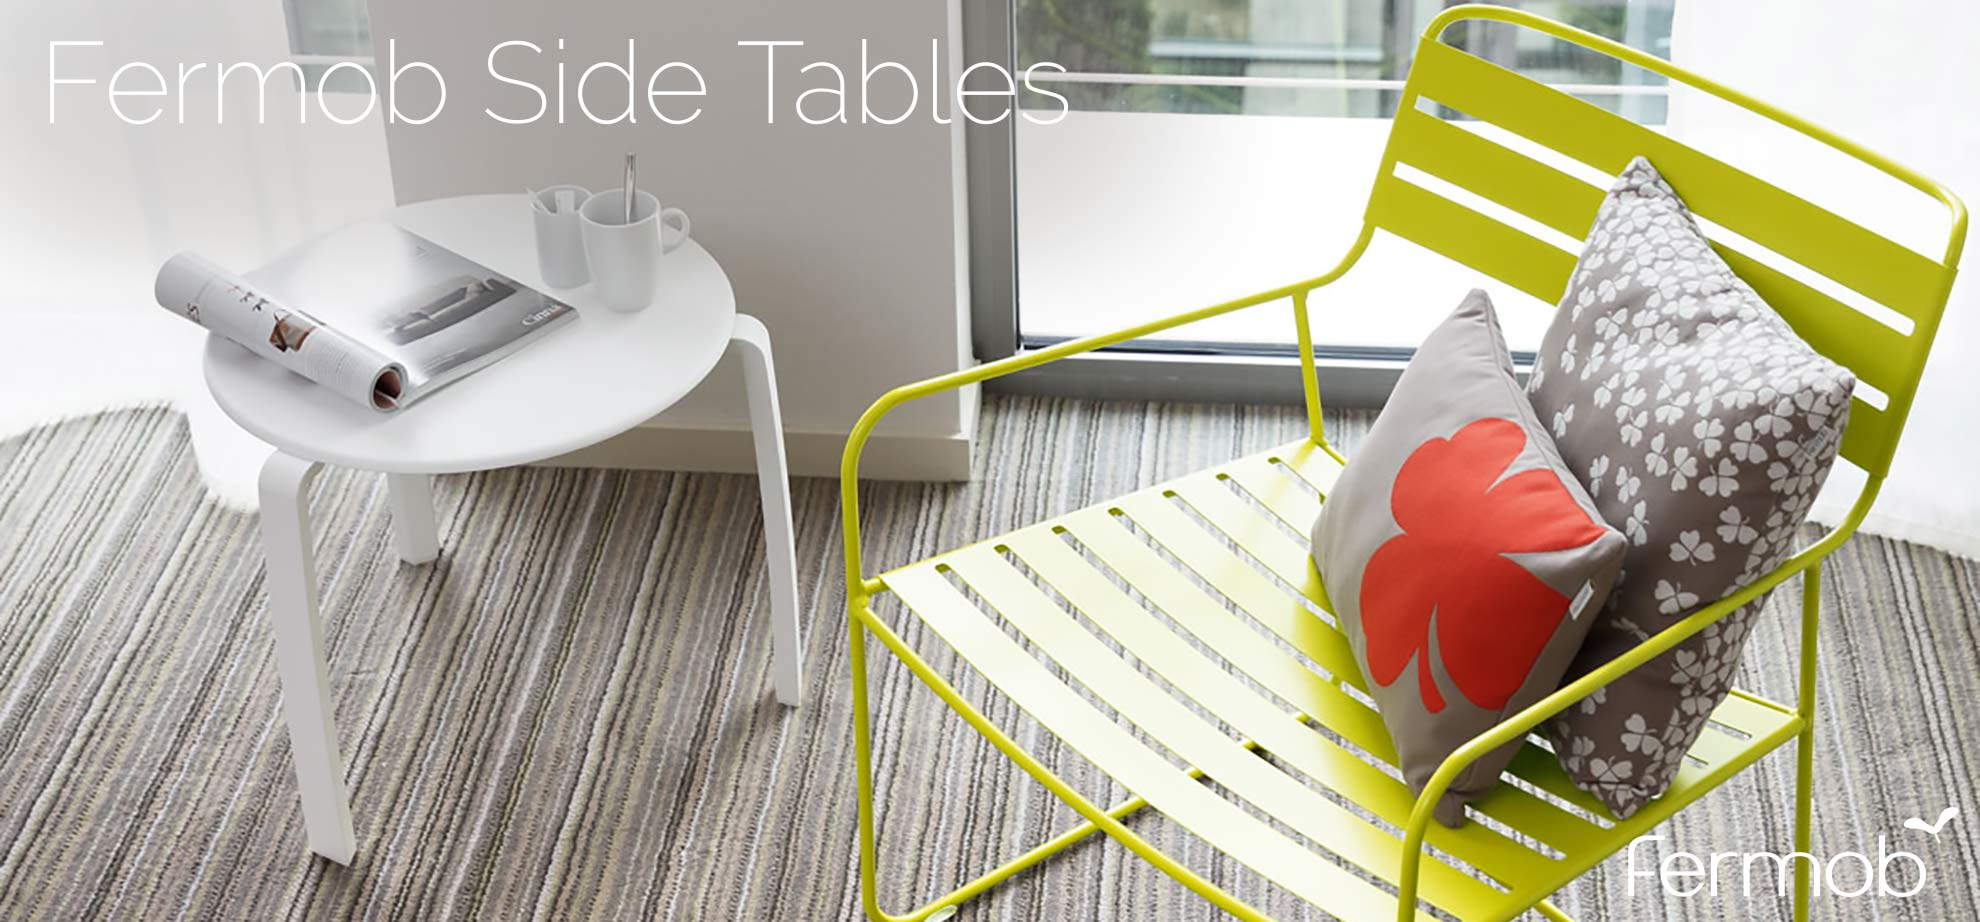 Fermob side tables